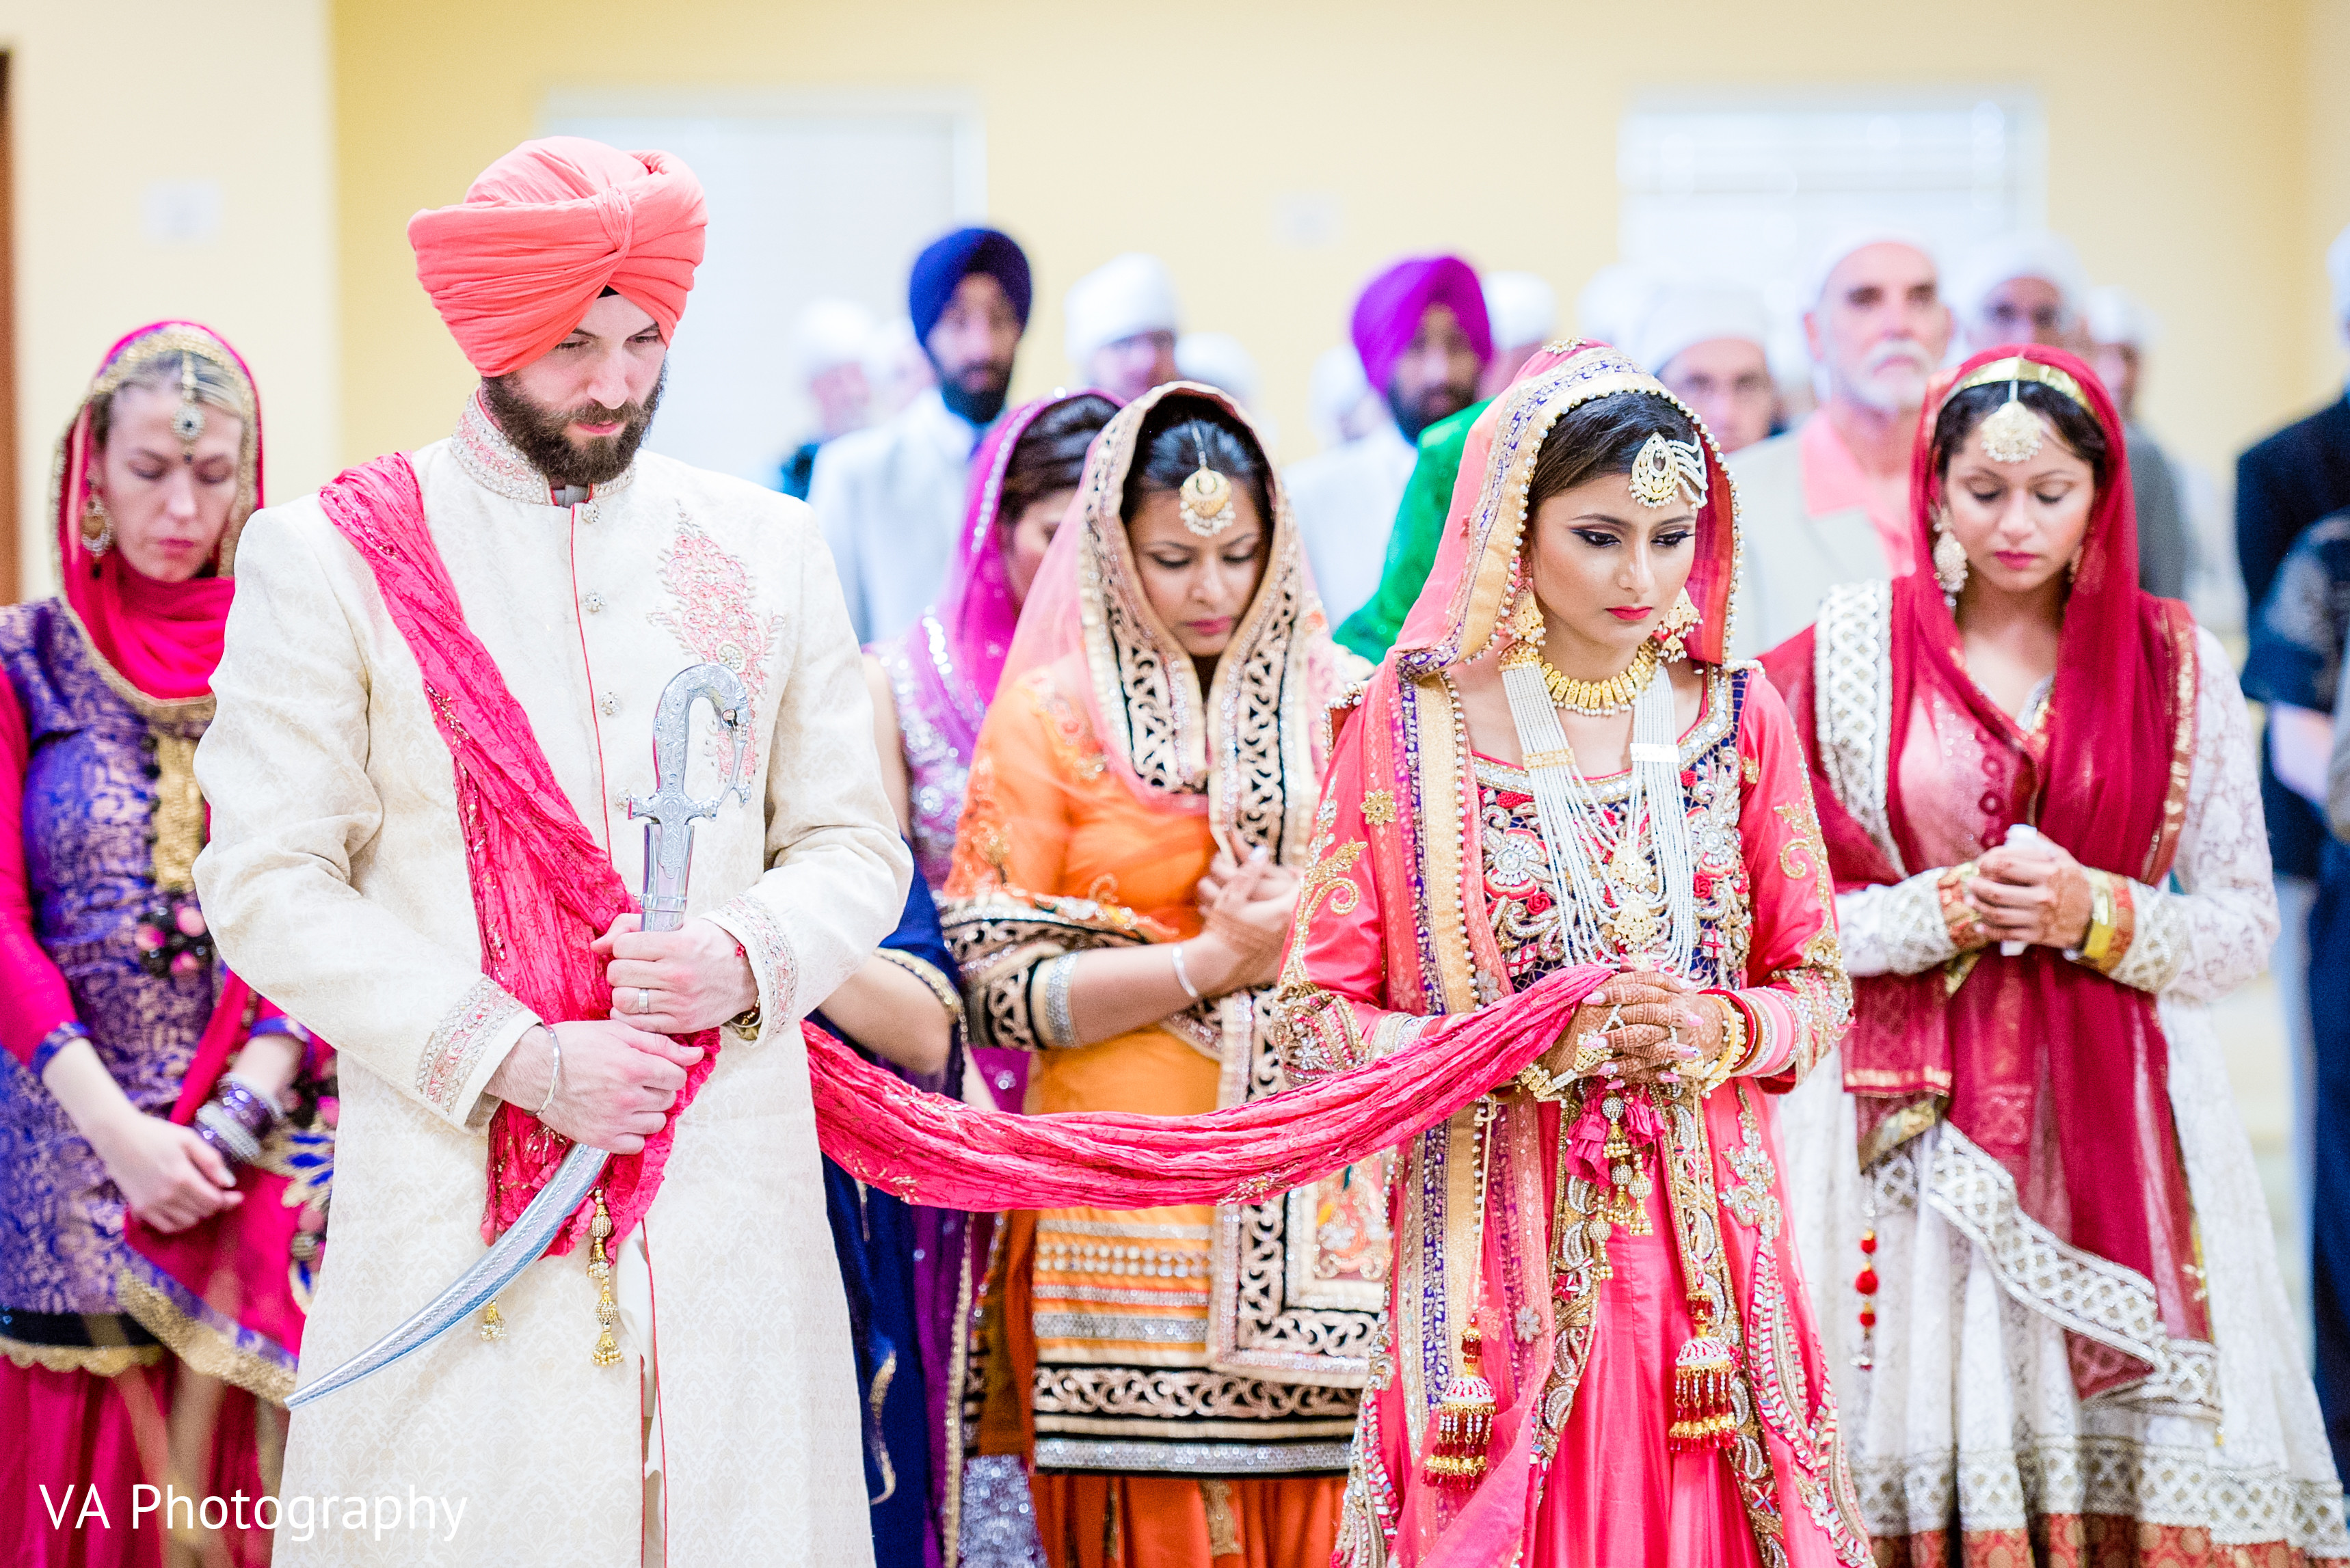 Sikh Wedding Gifts Ideas Gift Ftempo Ceremony In San Jose Ca Fusion By Va